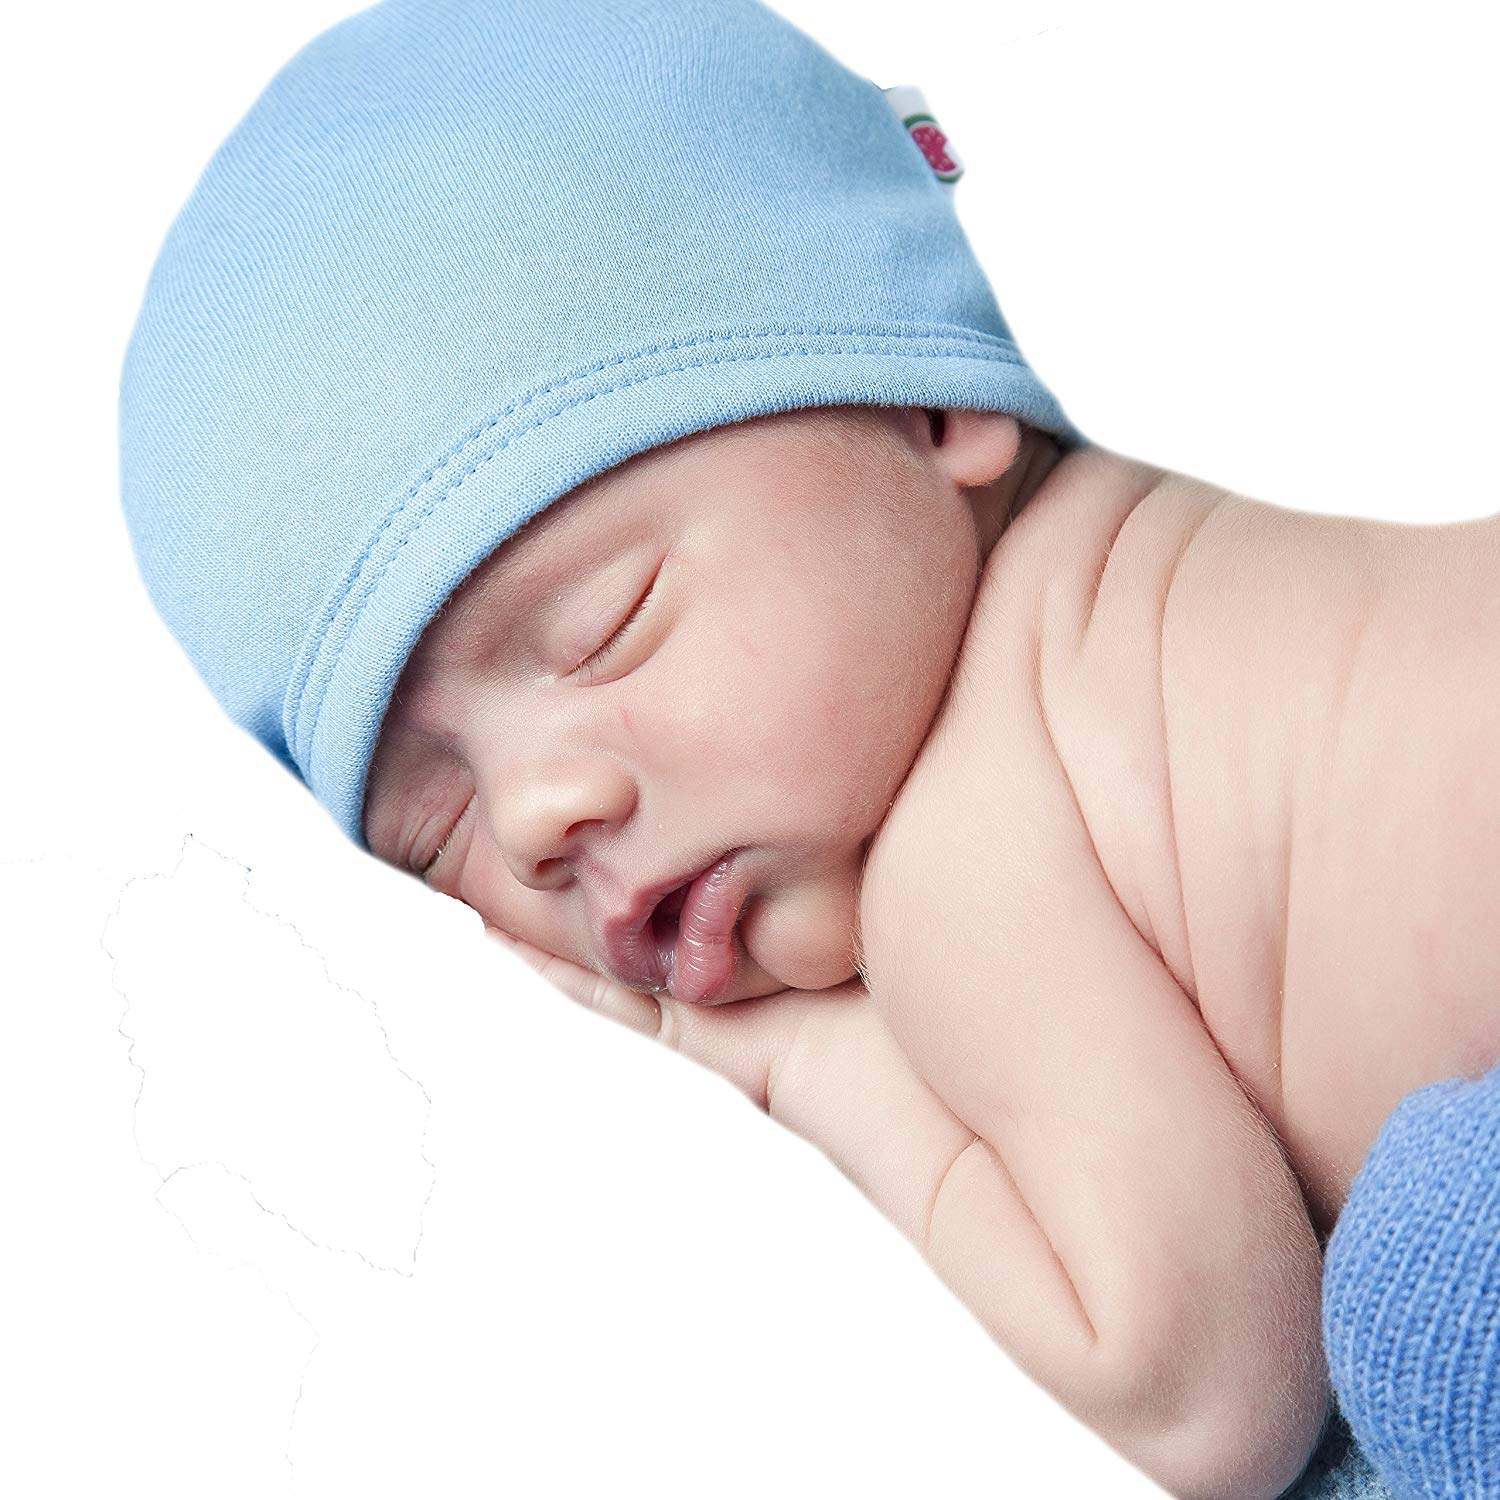 1339dddfb1d Get Quotations · Melondipity Baby Hats 100% Certified Organic Baby BOY  Beanie